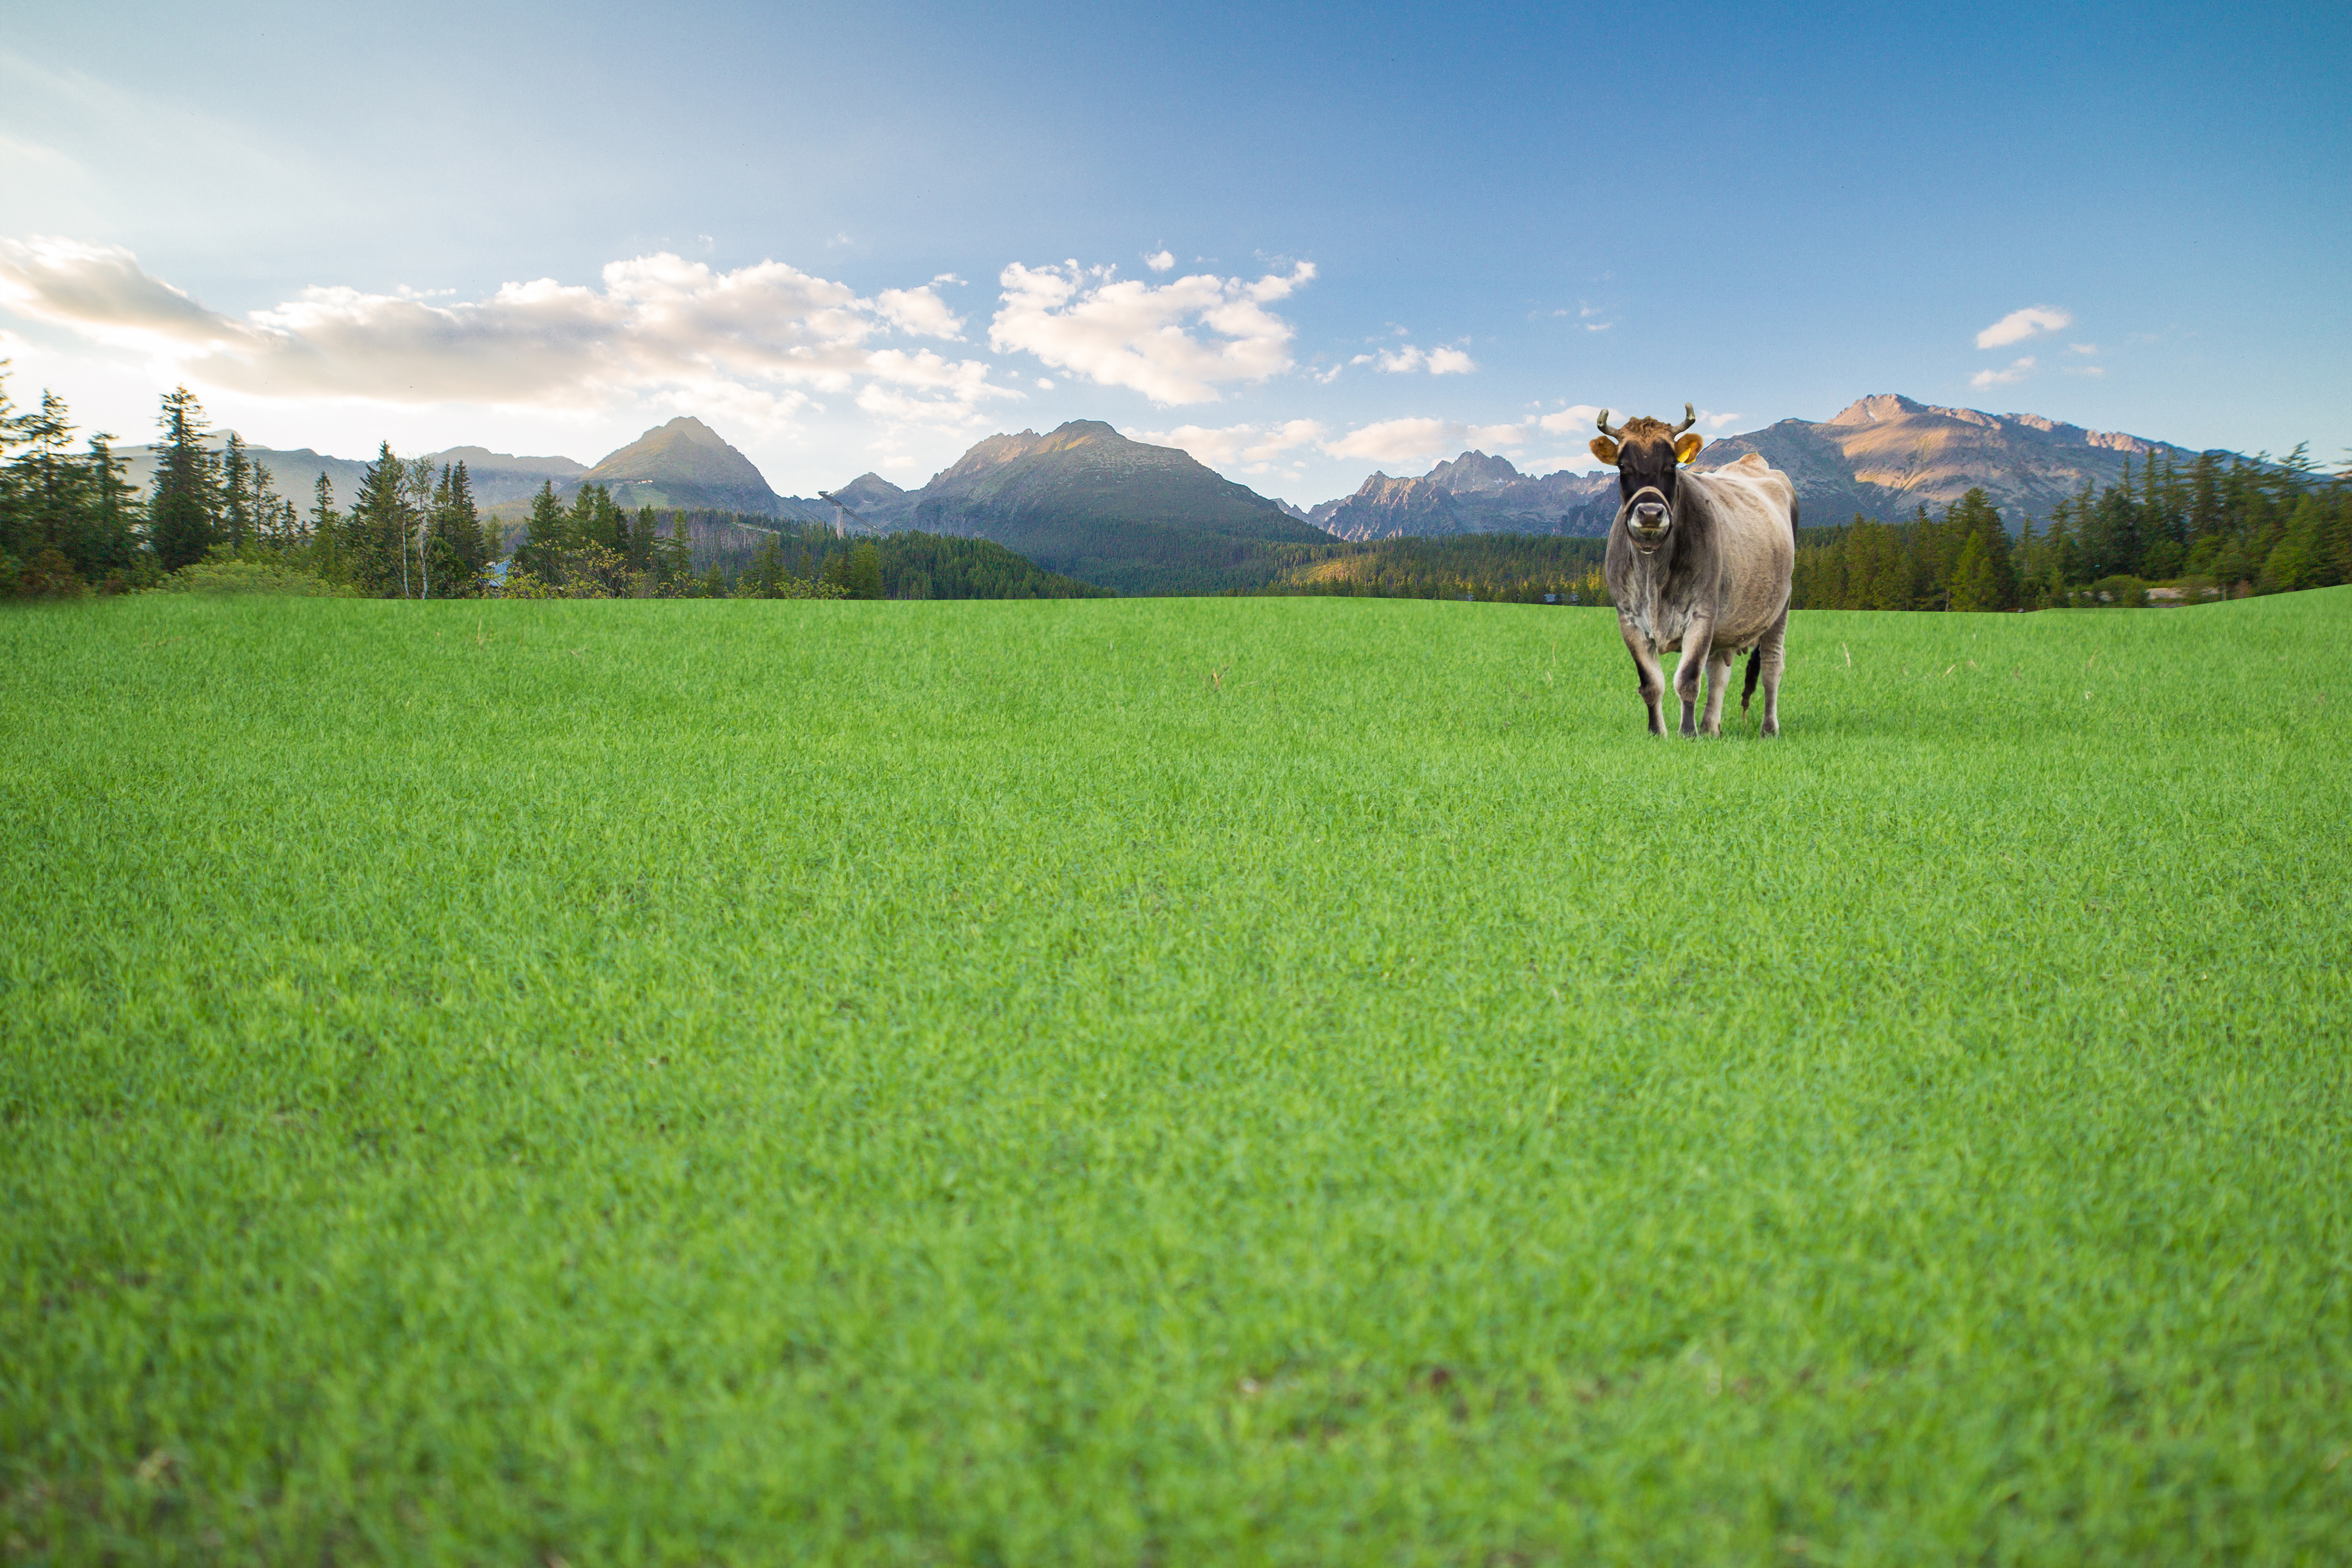 Happy grass fed cow